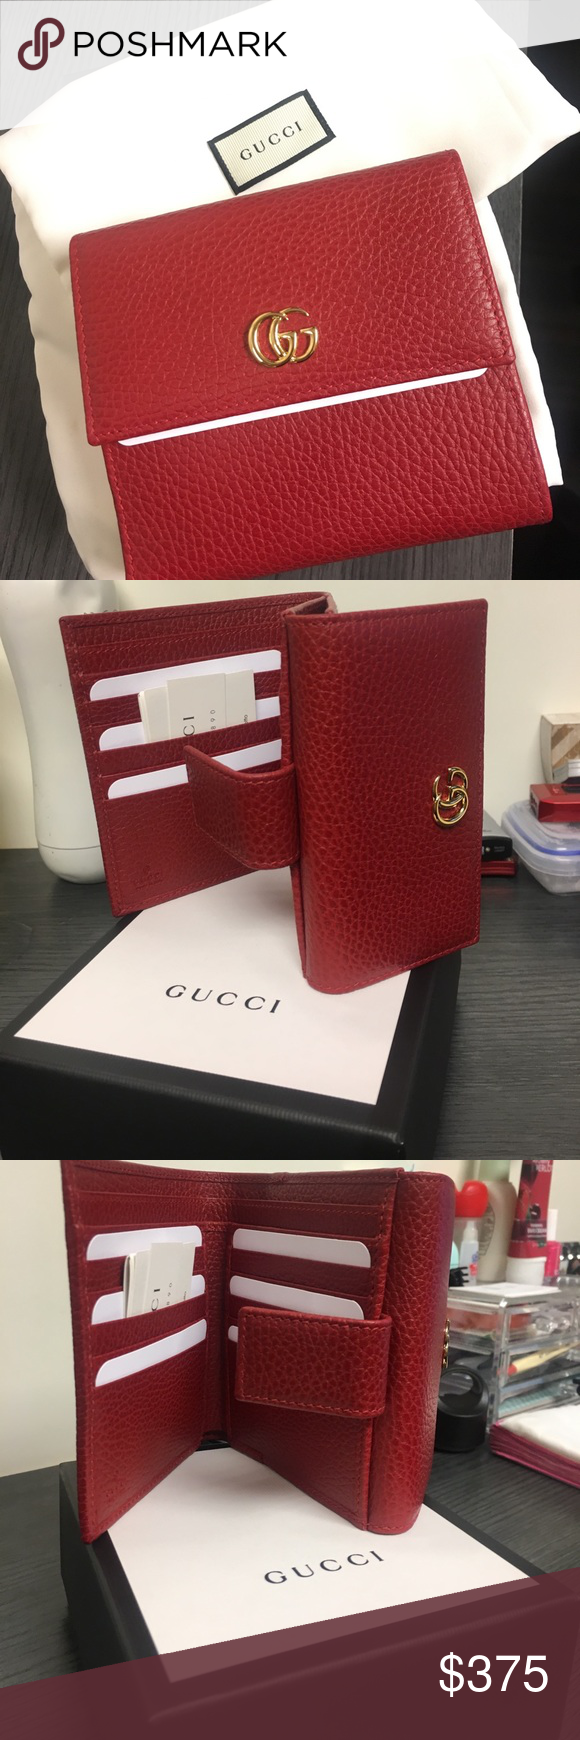 7ea969e6fe90 Gucci Red Leather French Flap Wallet Brand new Gucci Wallet with box and  silk dust bag. Never used- original papers still inside Gucci Bags Wallets